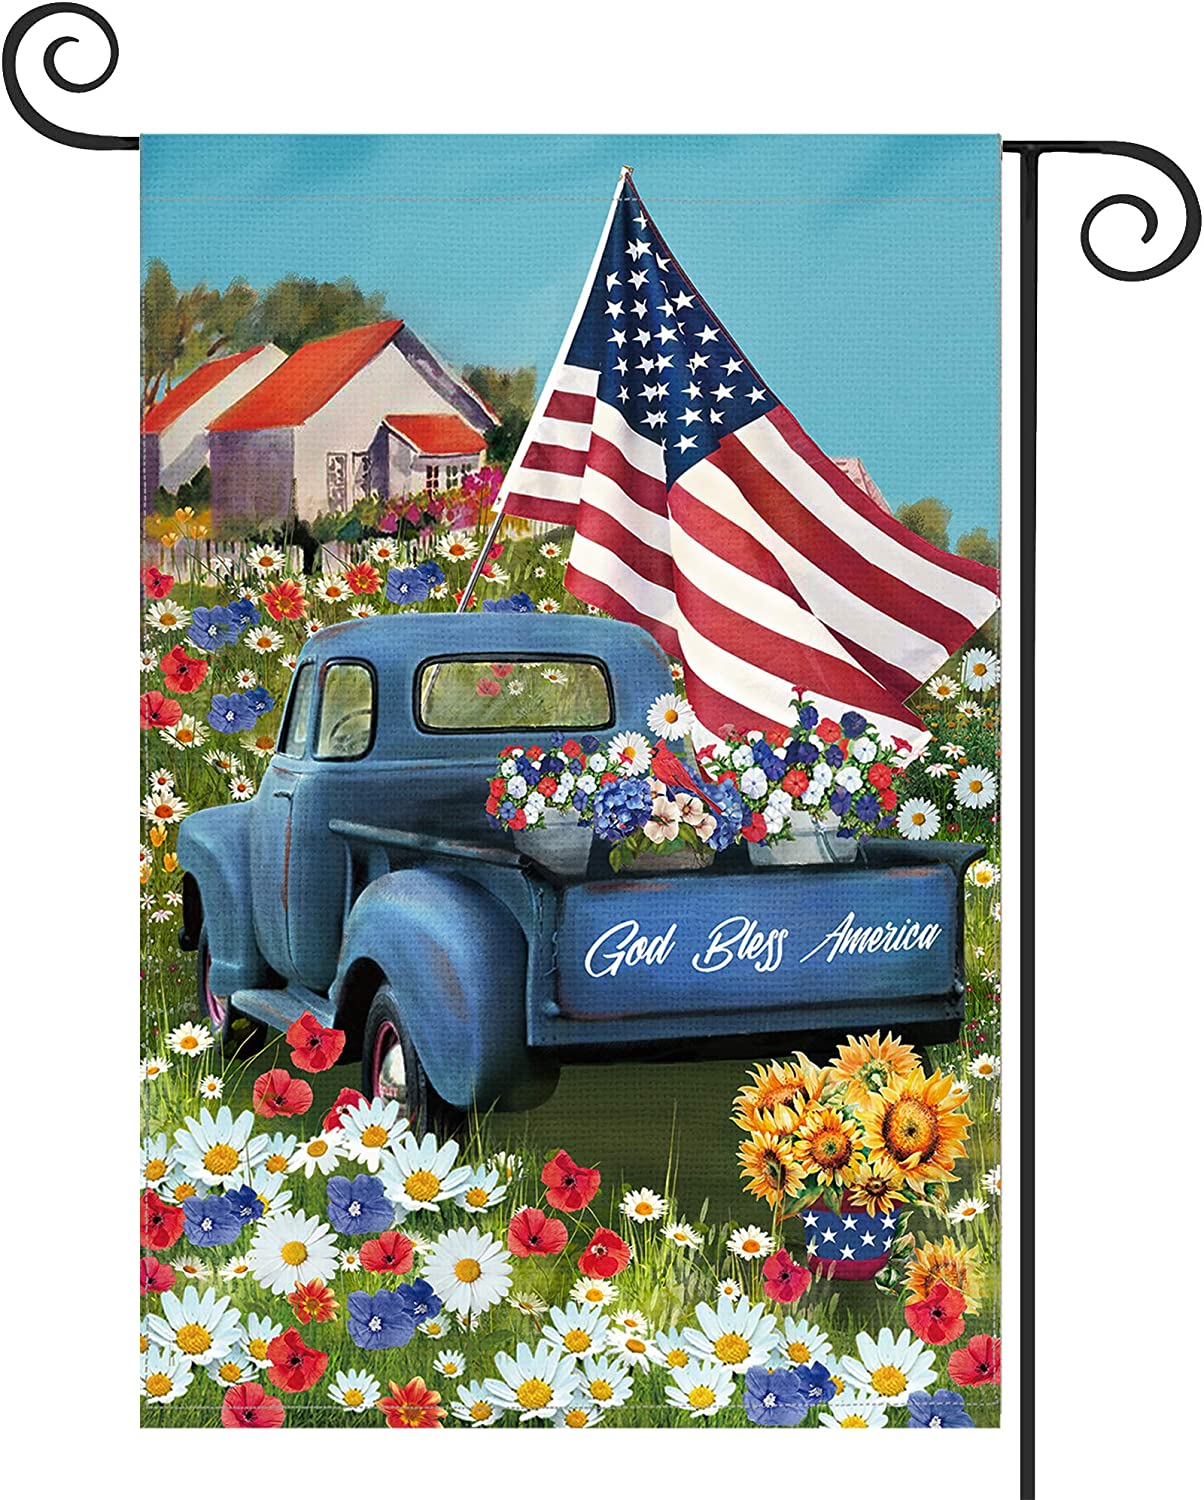 KamaLove God Bless America 4th of July Garden Flag Vertical Double Sided, Independence Day Patriotic Rustic Truck Small Burlap Yard Flag 12×18 Inch, Summer Memorial Decorative Gift for Home Outdoor